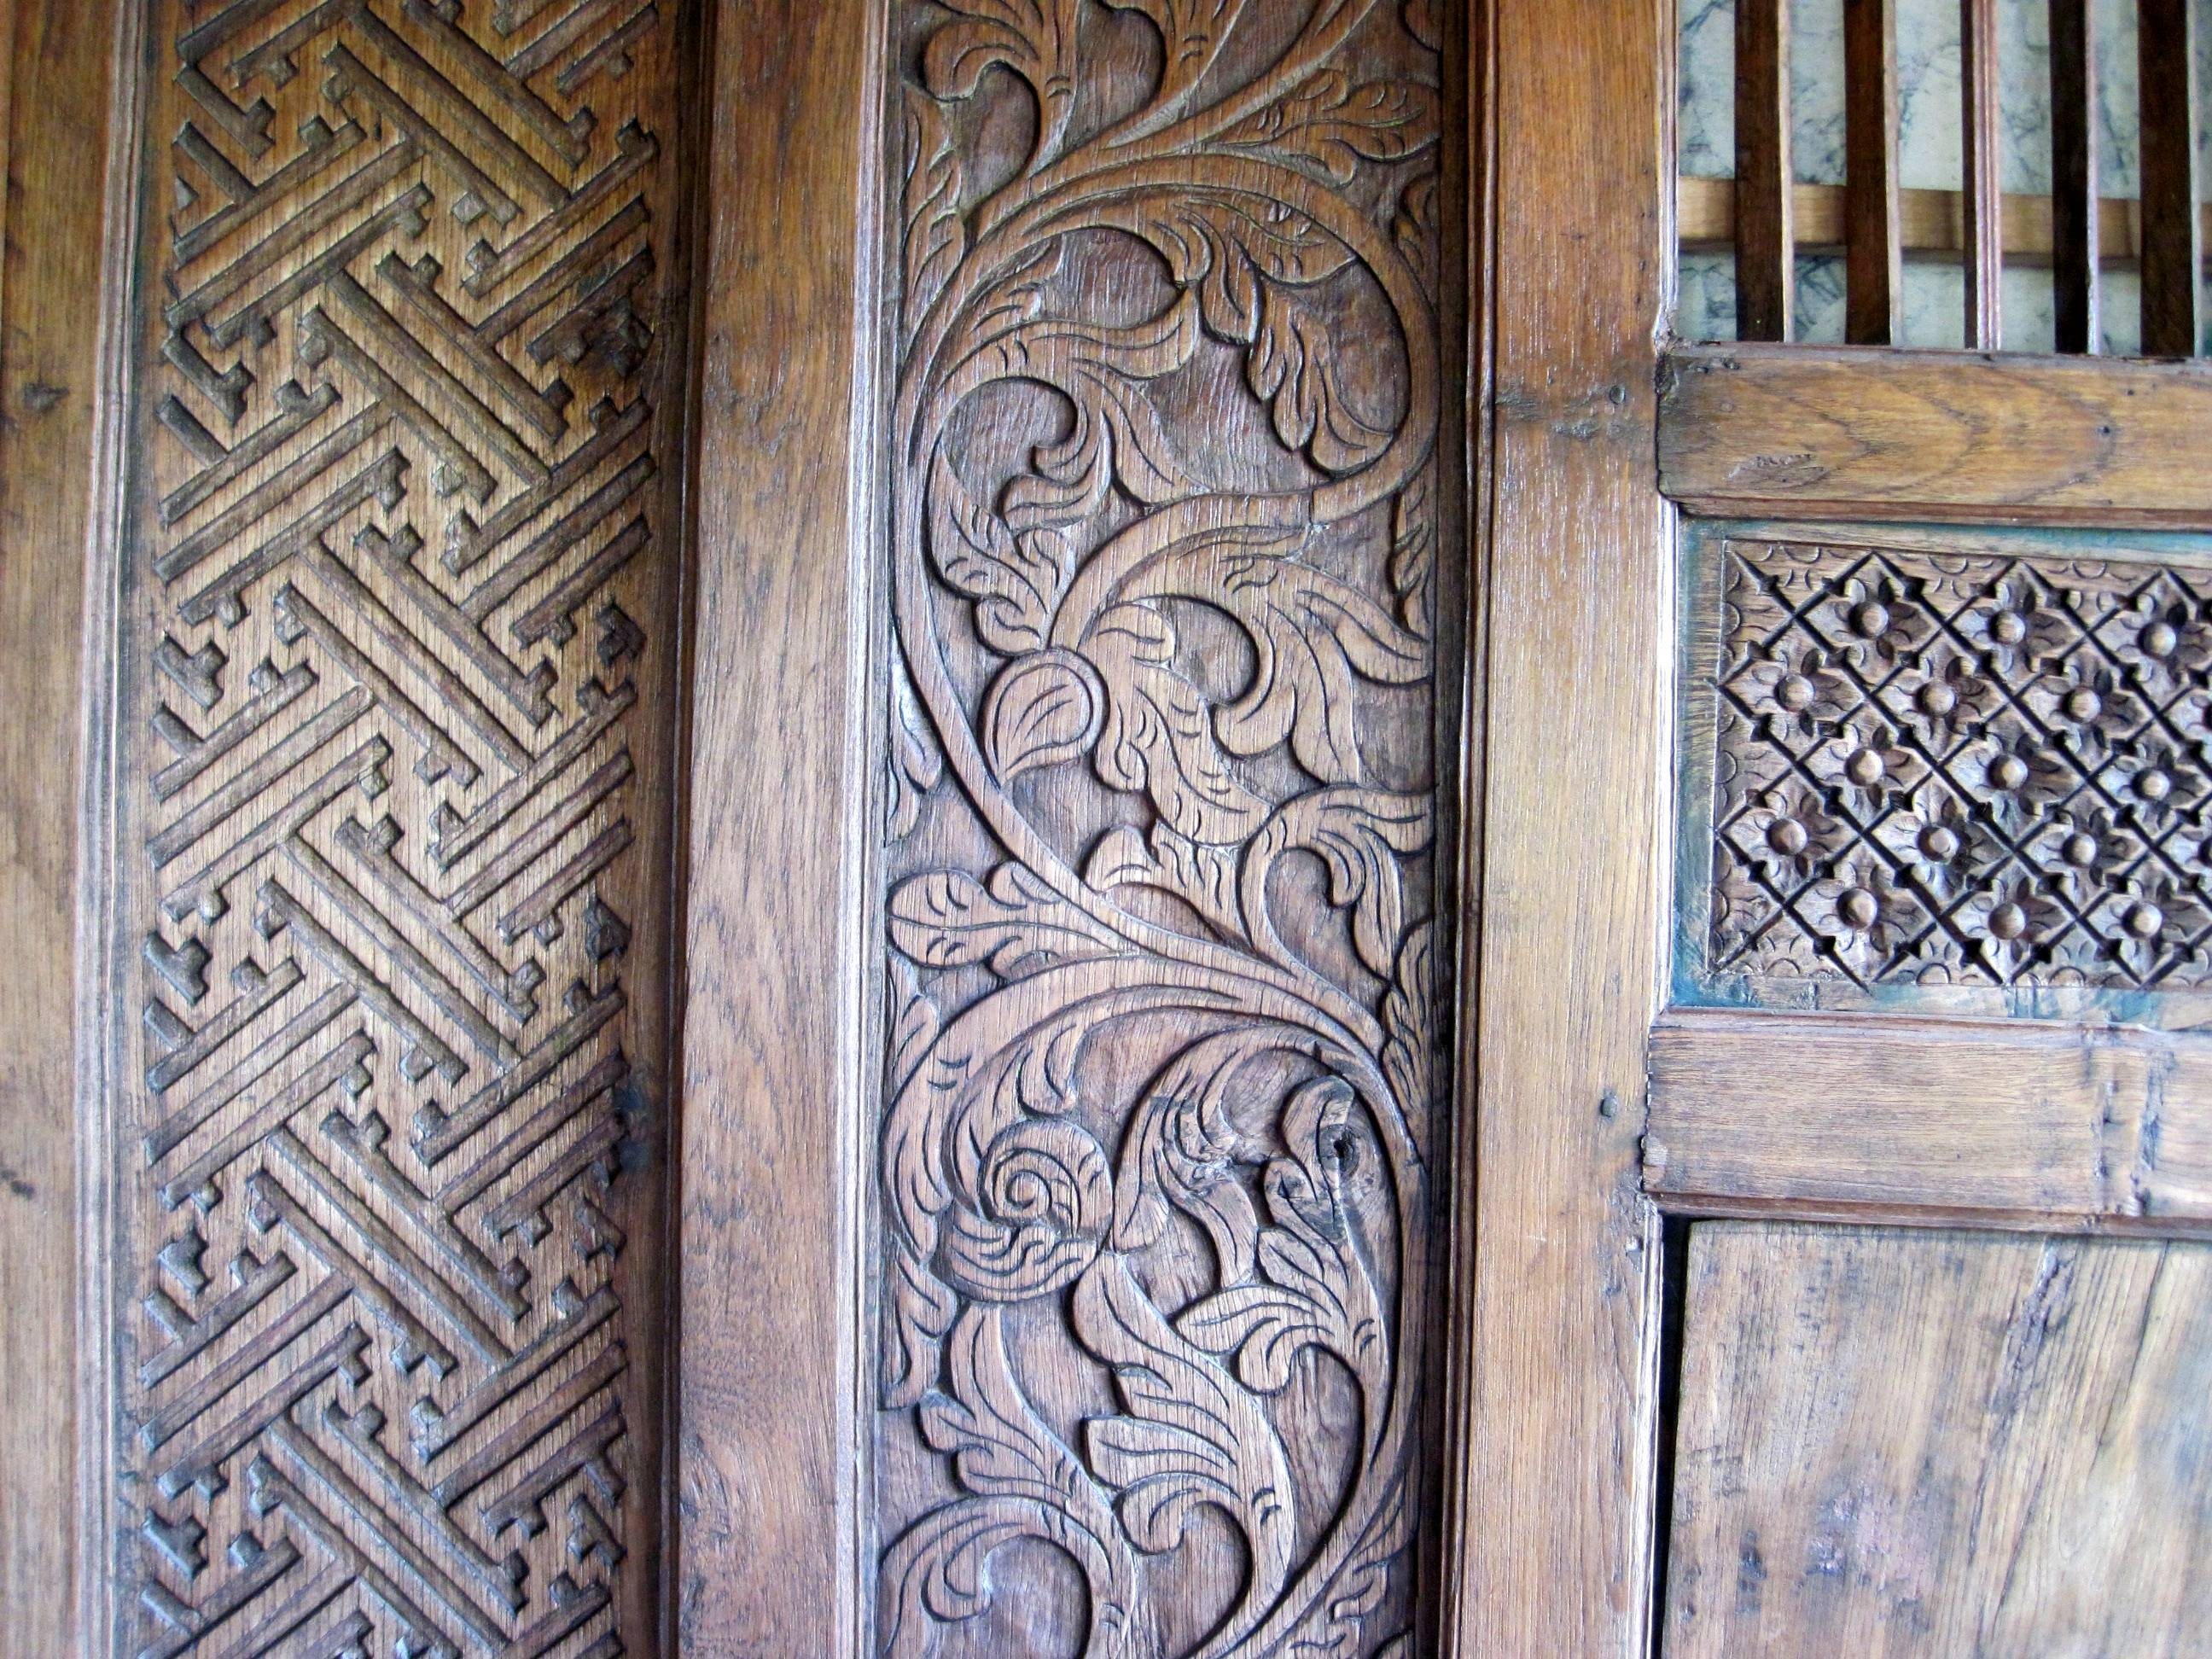 Wall Art Wood Carvings | Wallartideas With Latest Balinese Wall Art (View 25 of 30)